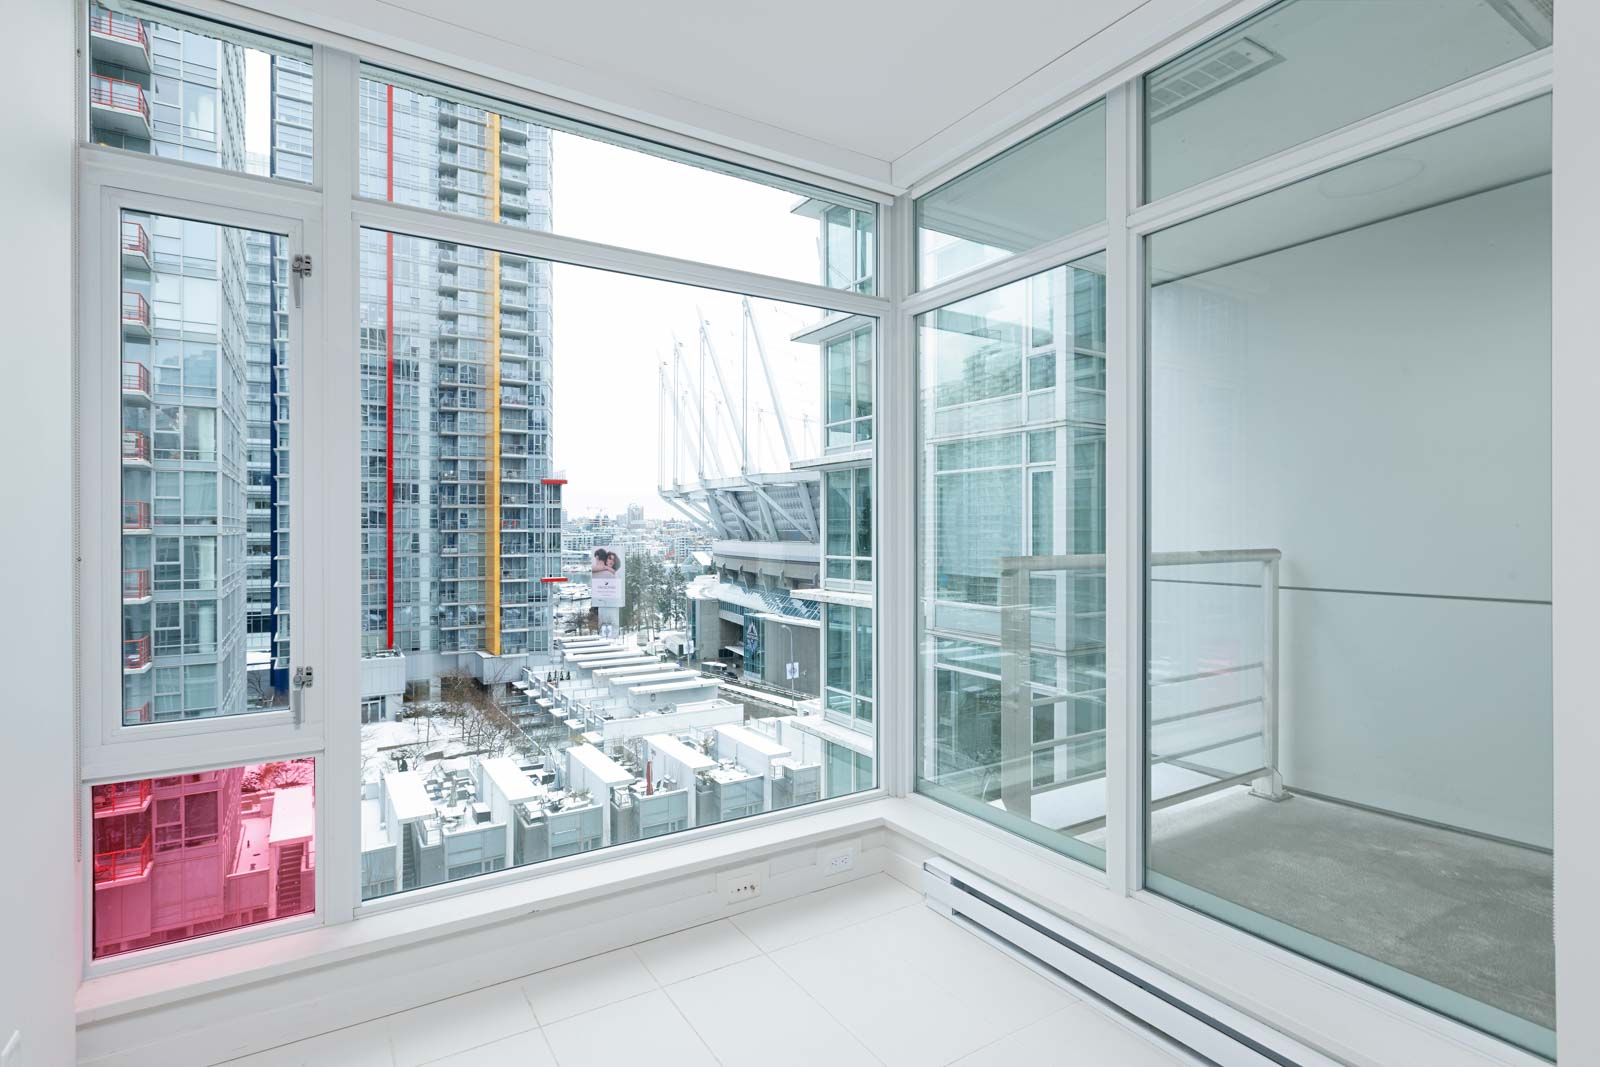 Bedroom with view at Downtown Vancouver condo rental managed by Birds Nest Properties.